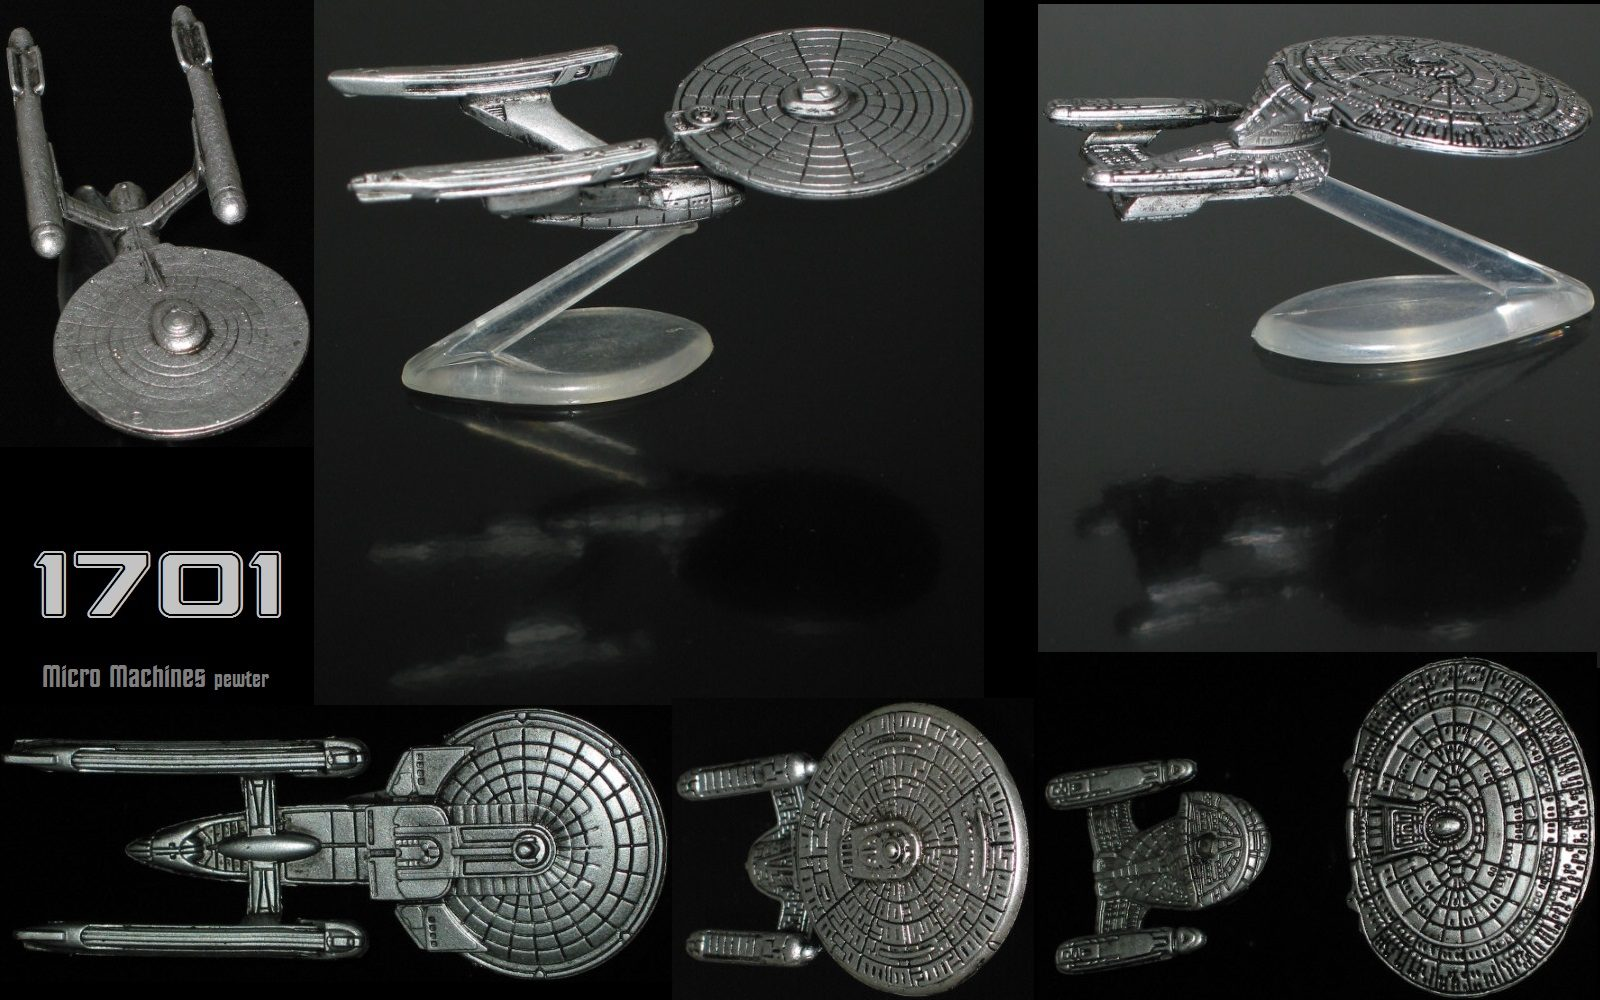 ENTERPRISE 1701 Micro Machines pewter edition